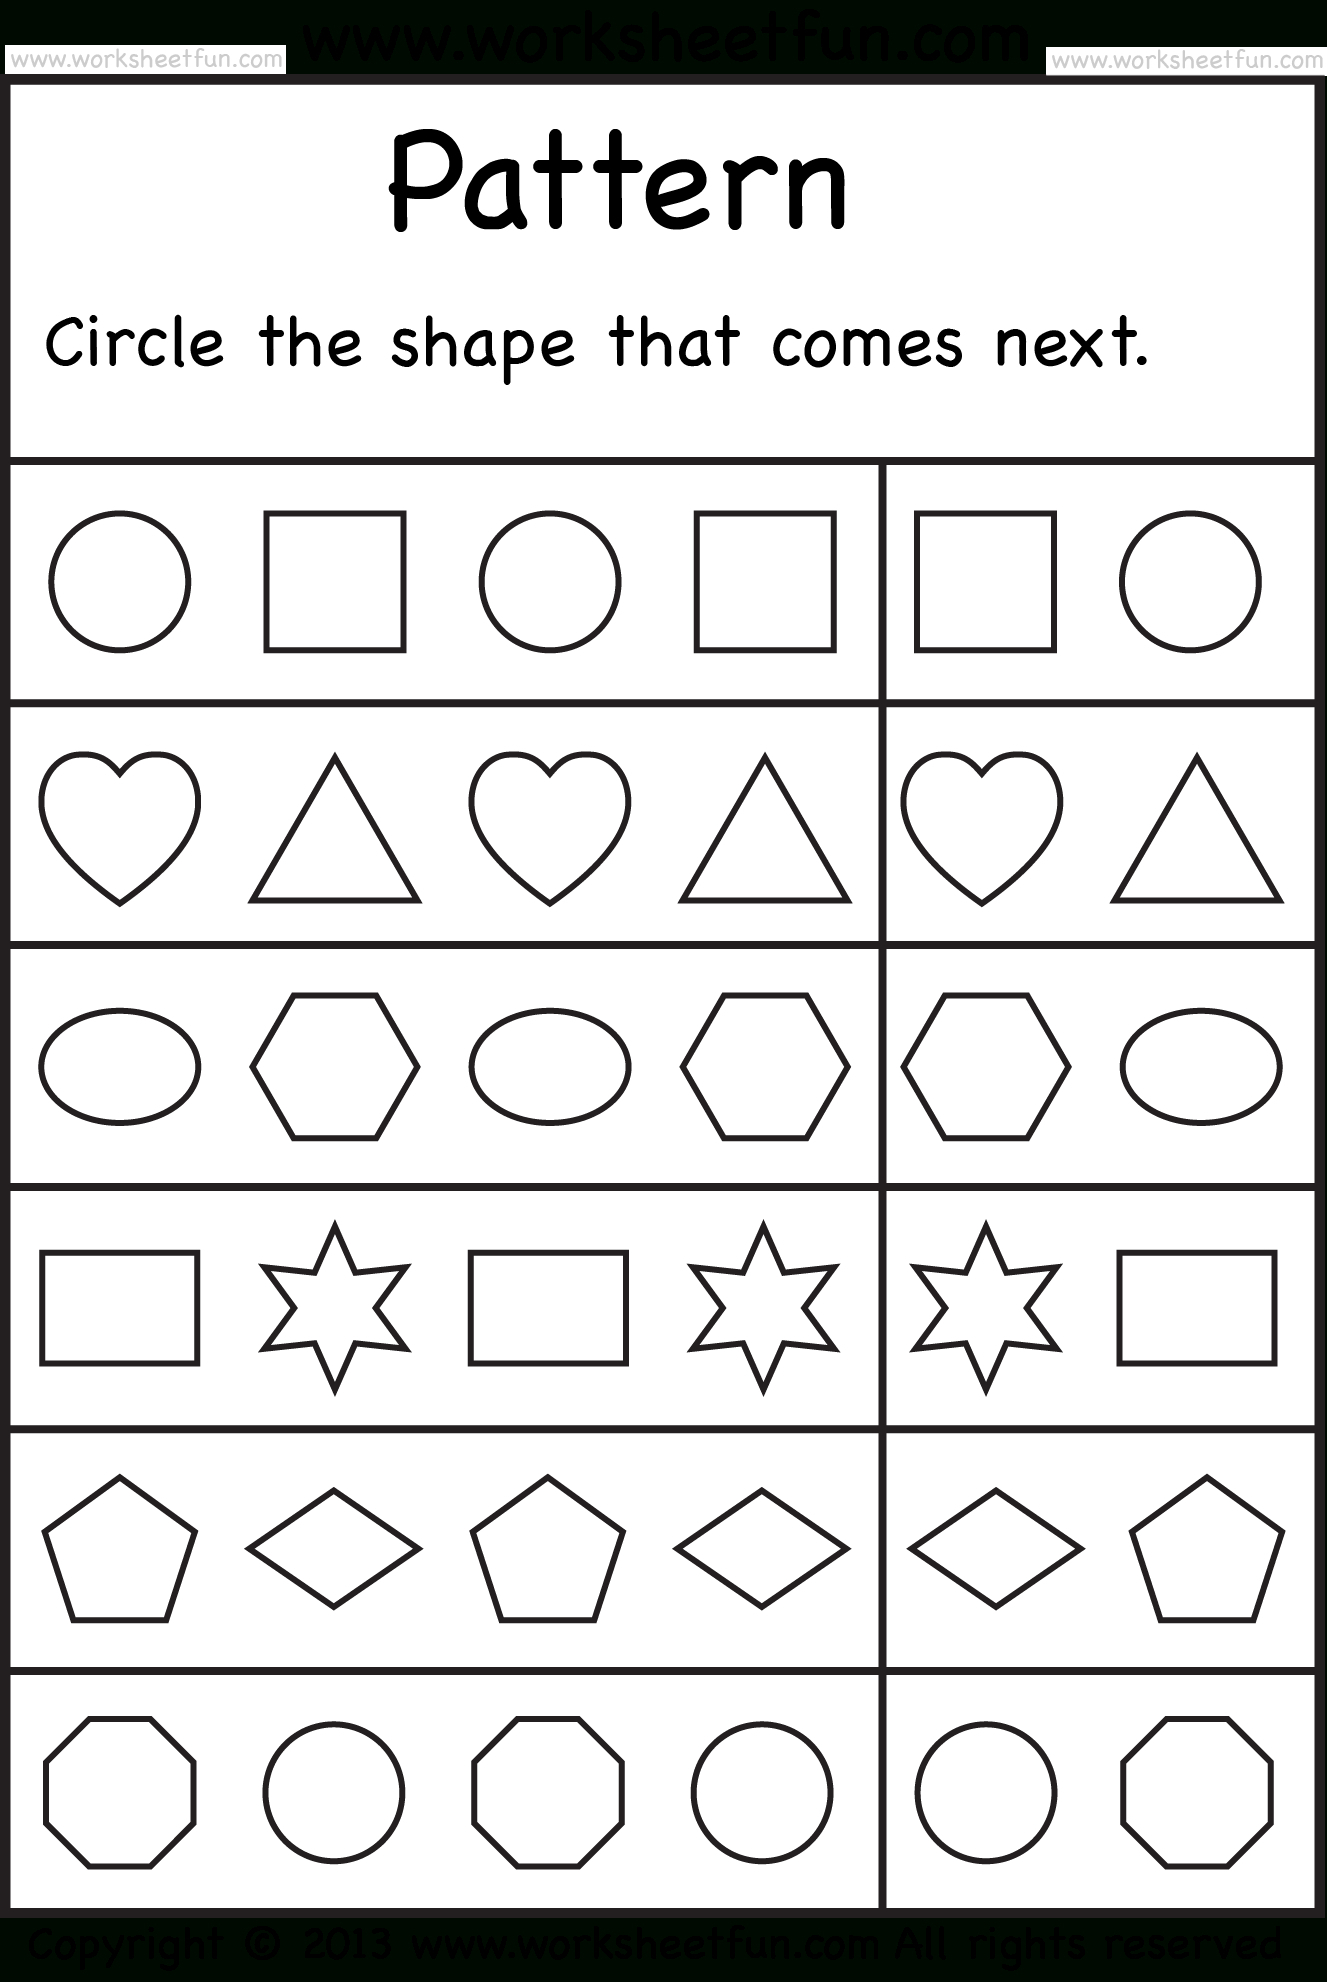 Free Printable Worksheets – Worksheetfun / Free Printable - Free | Free Printable Sequencing Worksheets For Kindergarten